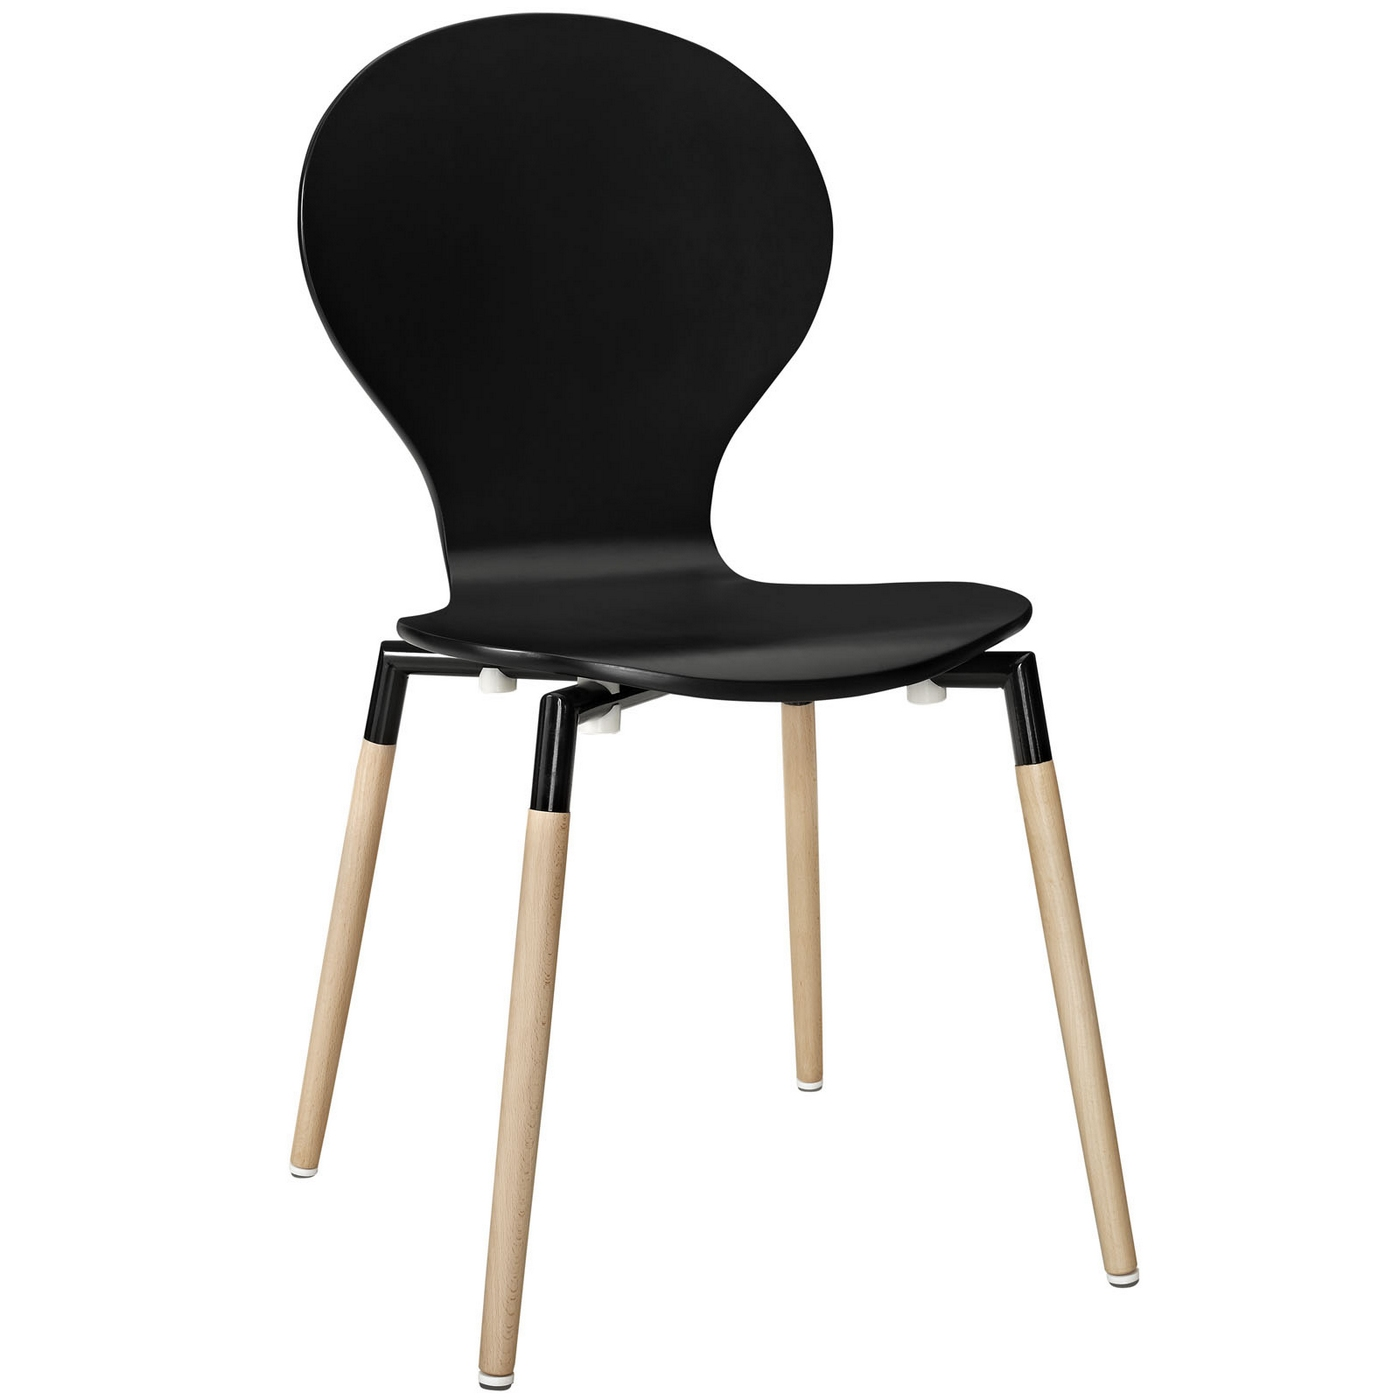 Path Stylish Contemporary Wood Dining Side Chair, Black